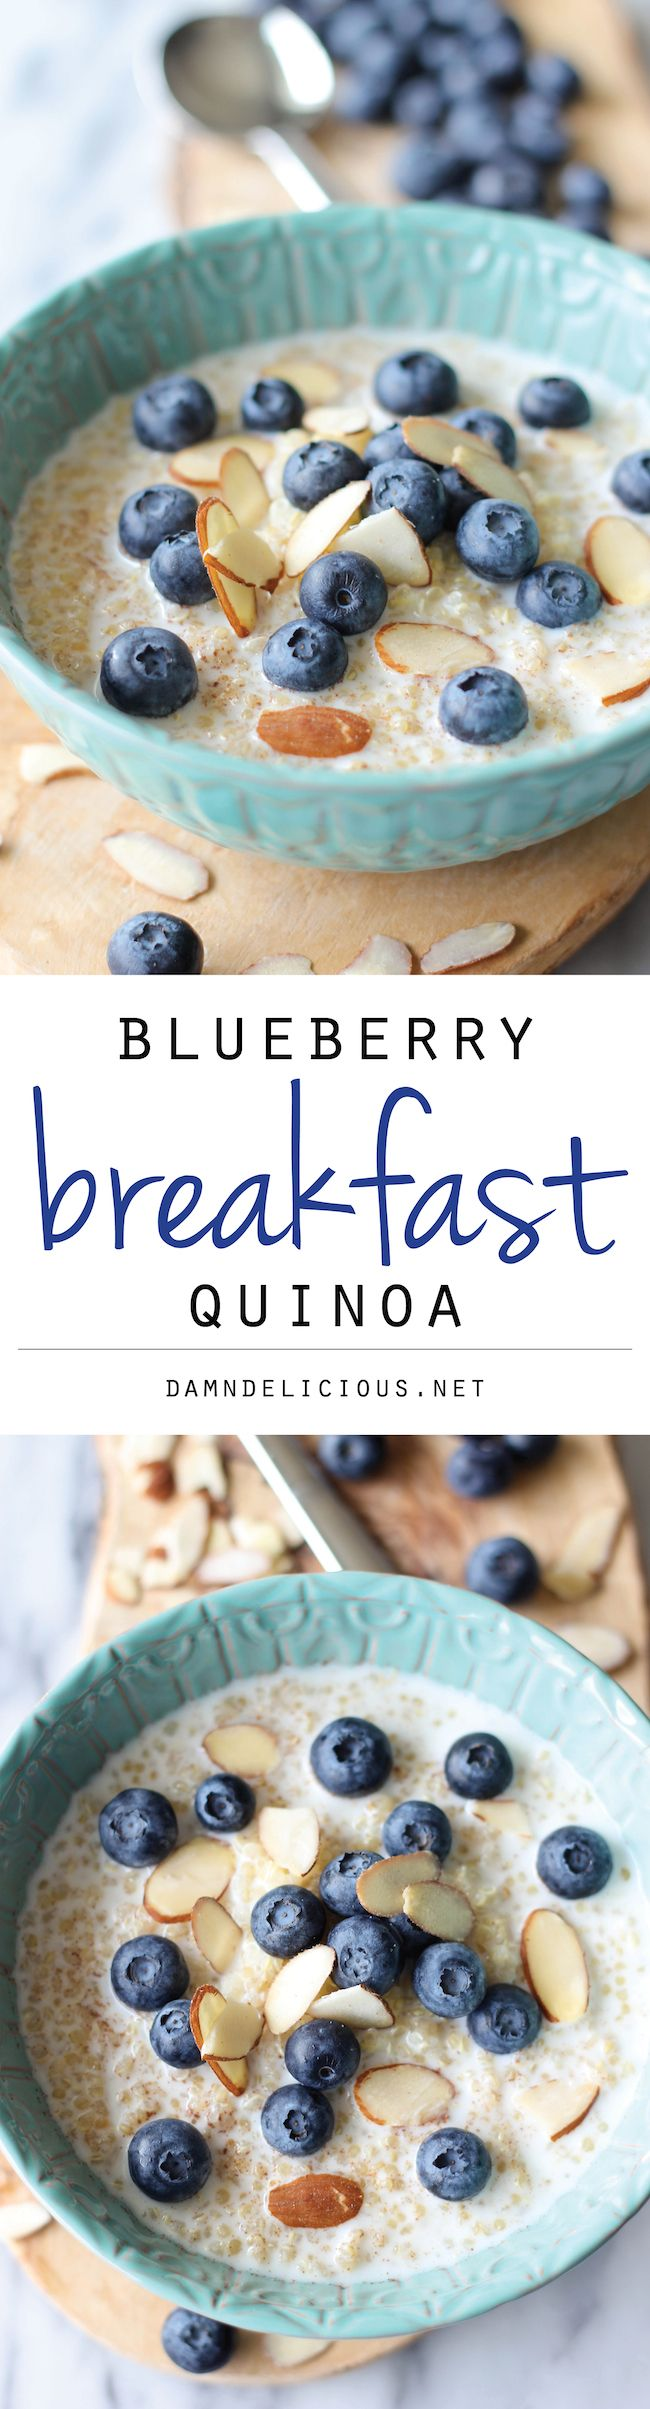 Blueberry Breakfast Quinoa - Start your day off right with this protein-packed…